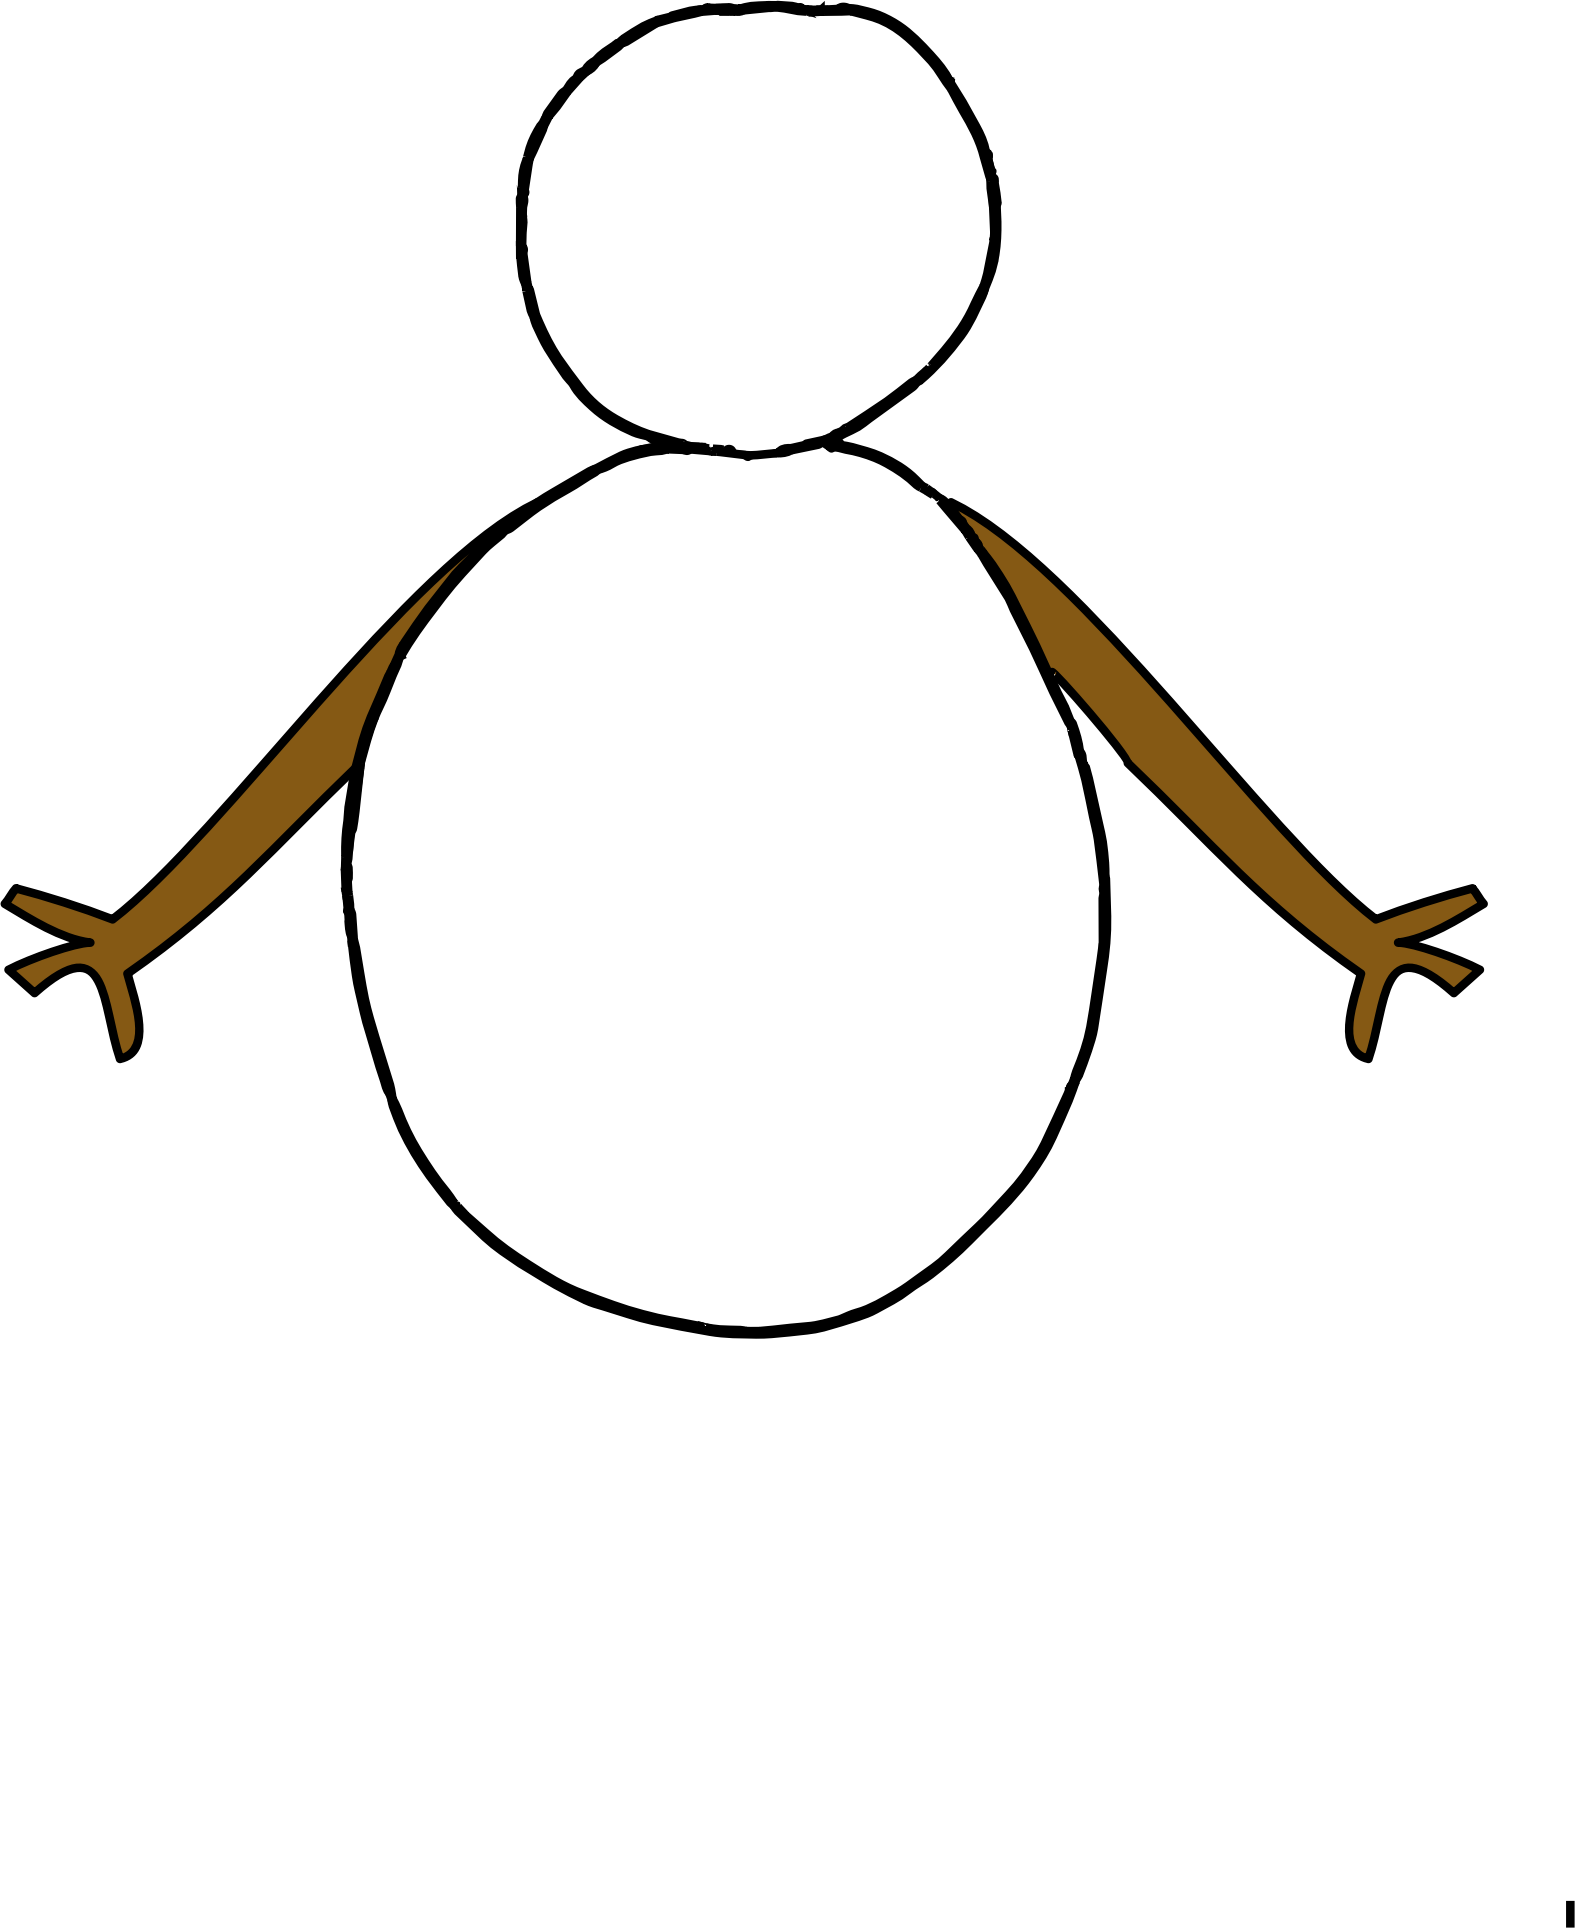 simple snowman by spevi